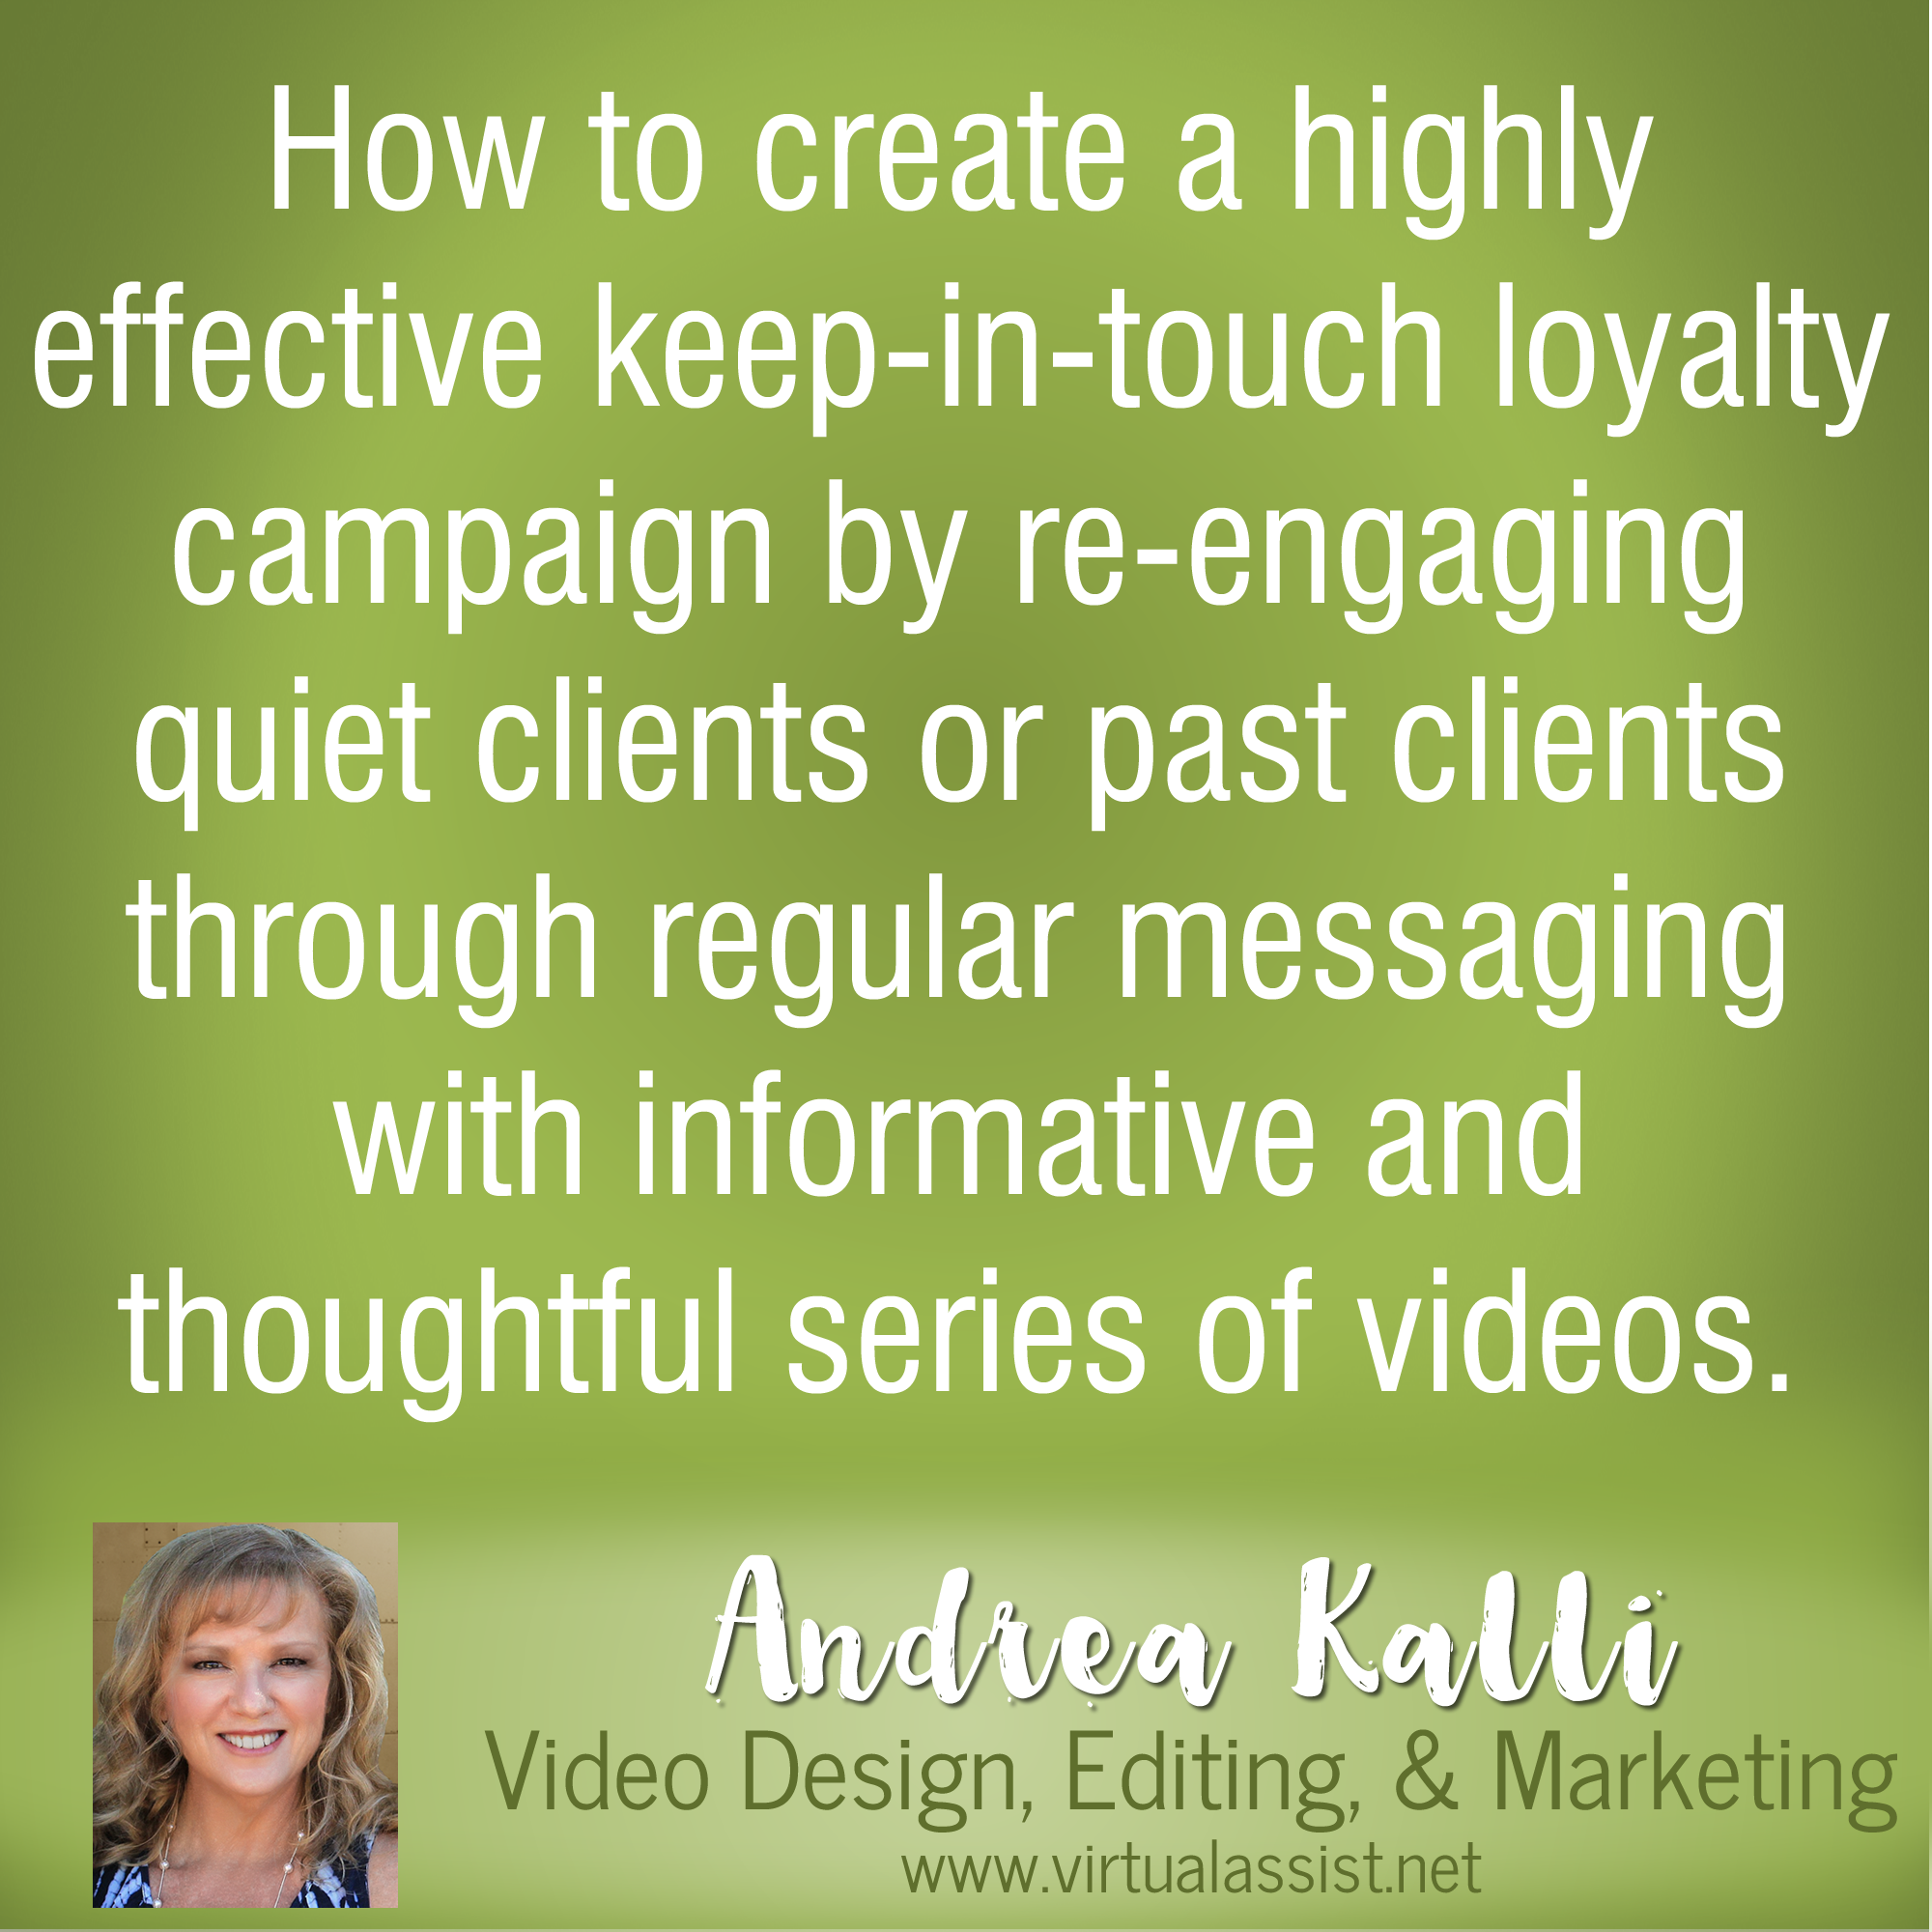 How to Use Video to Re-engage Past Clients or Inactive Clients